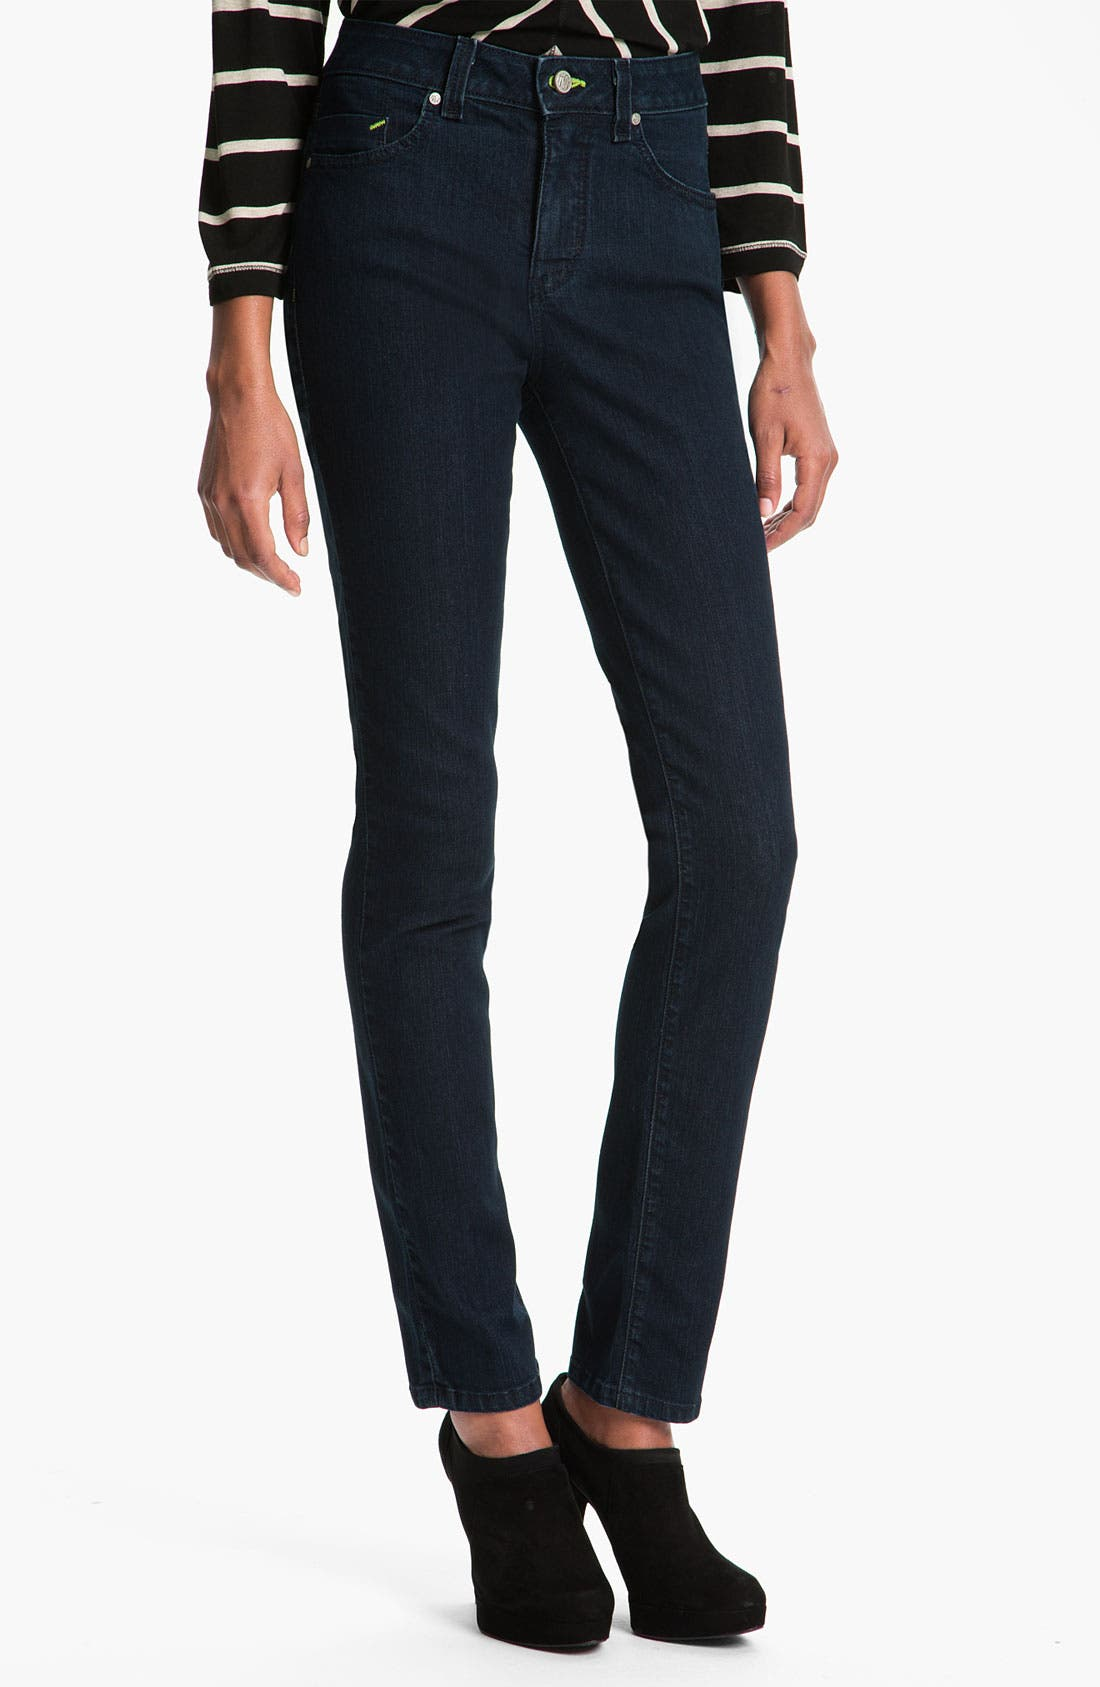 Alternate Image 1 Selected - Miraclebody 'Betty' Skinny Stretch Jeans